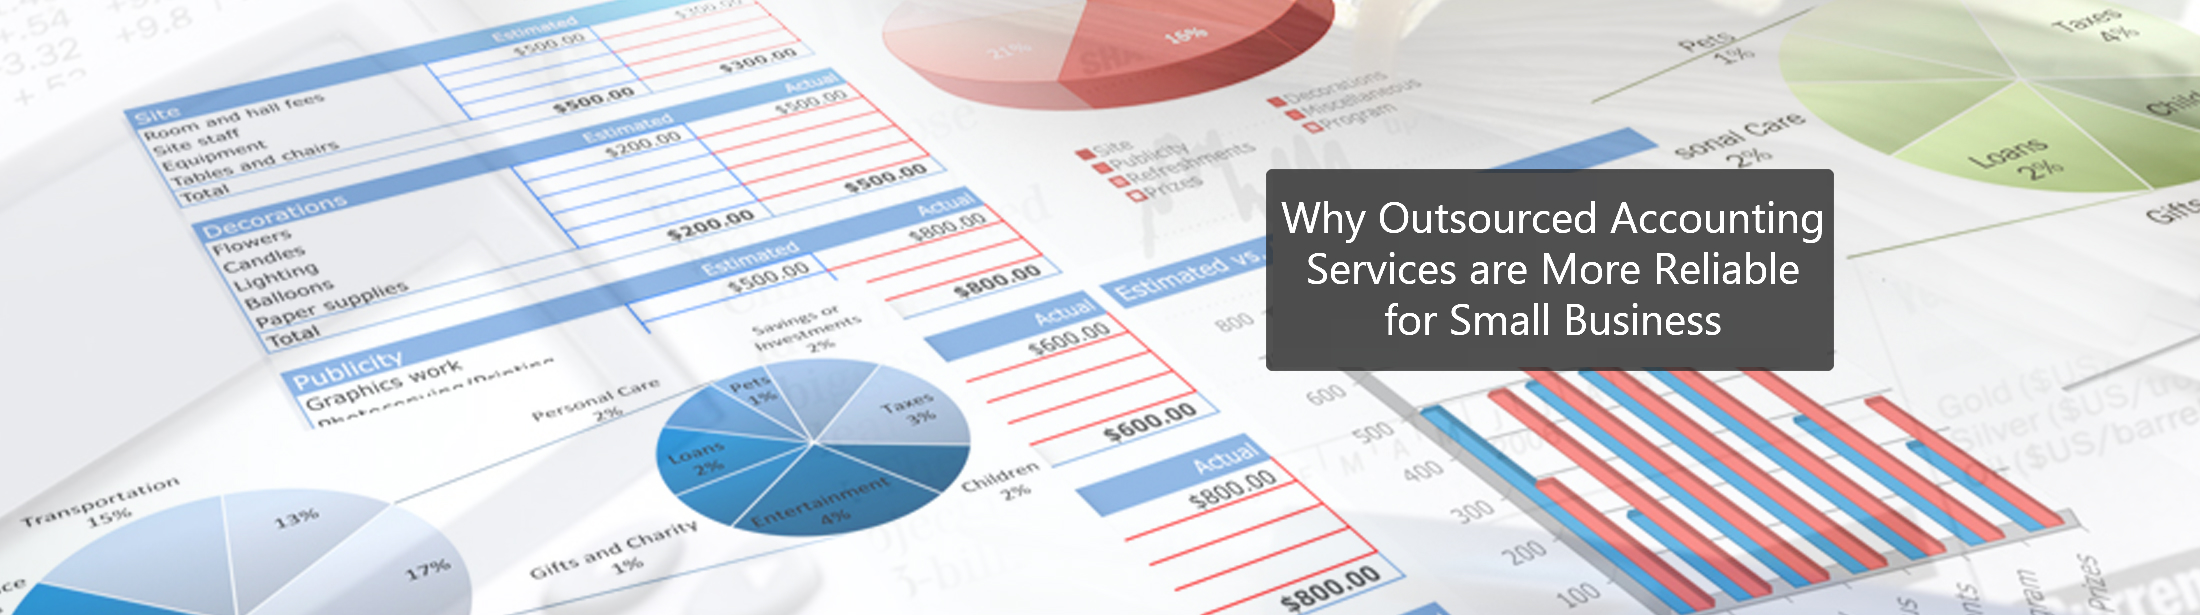 Why Outsourced Accounting Services are More Reliable for Small Business